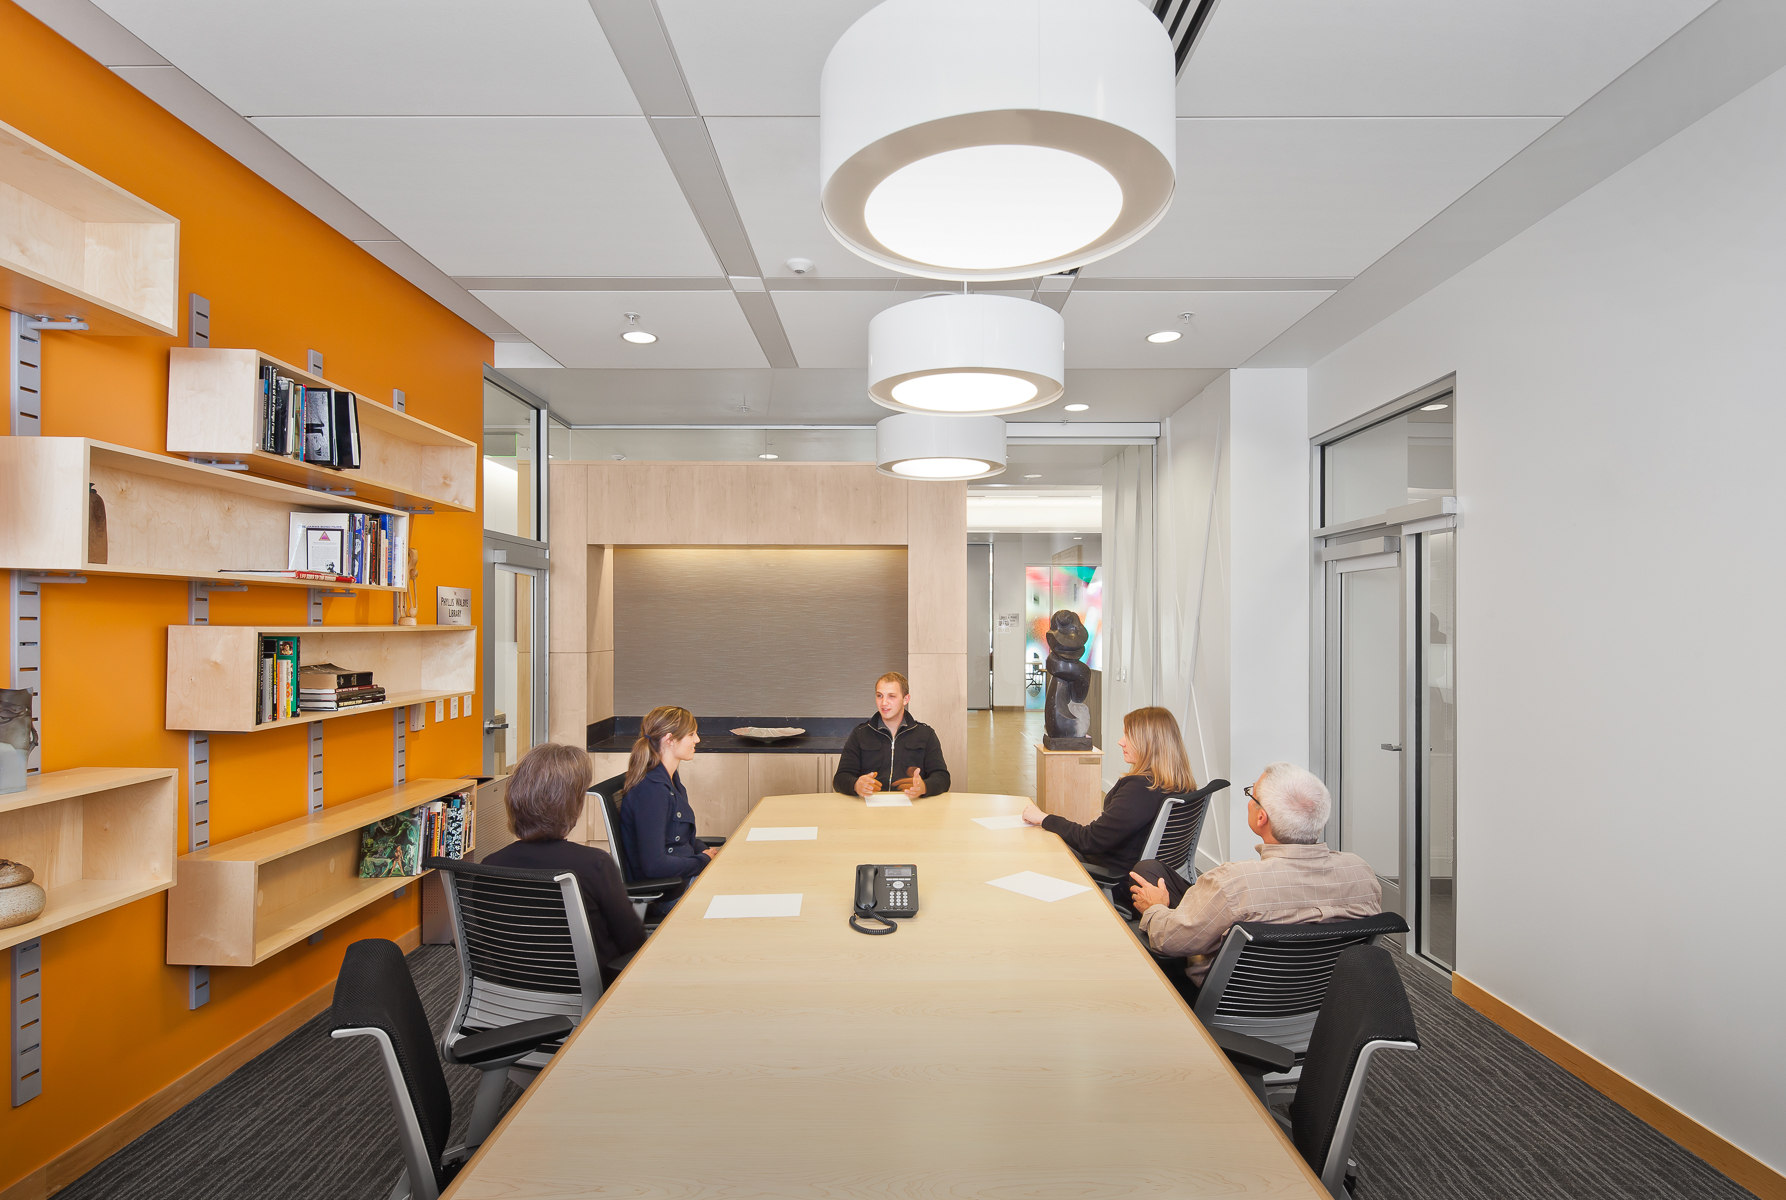 RB+B Architects' Rialto Theater renovation in Loveland, CO conference room